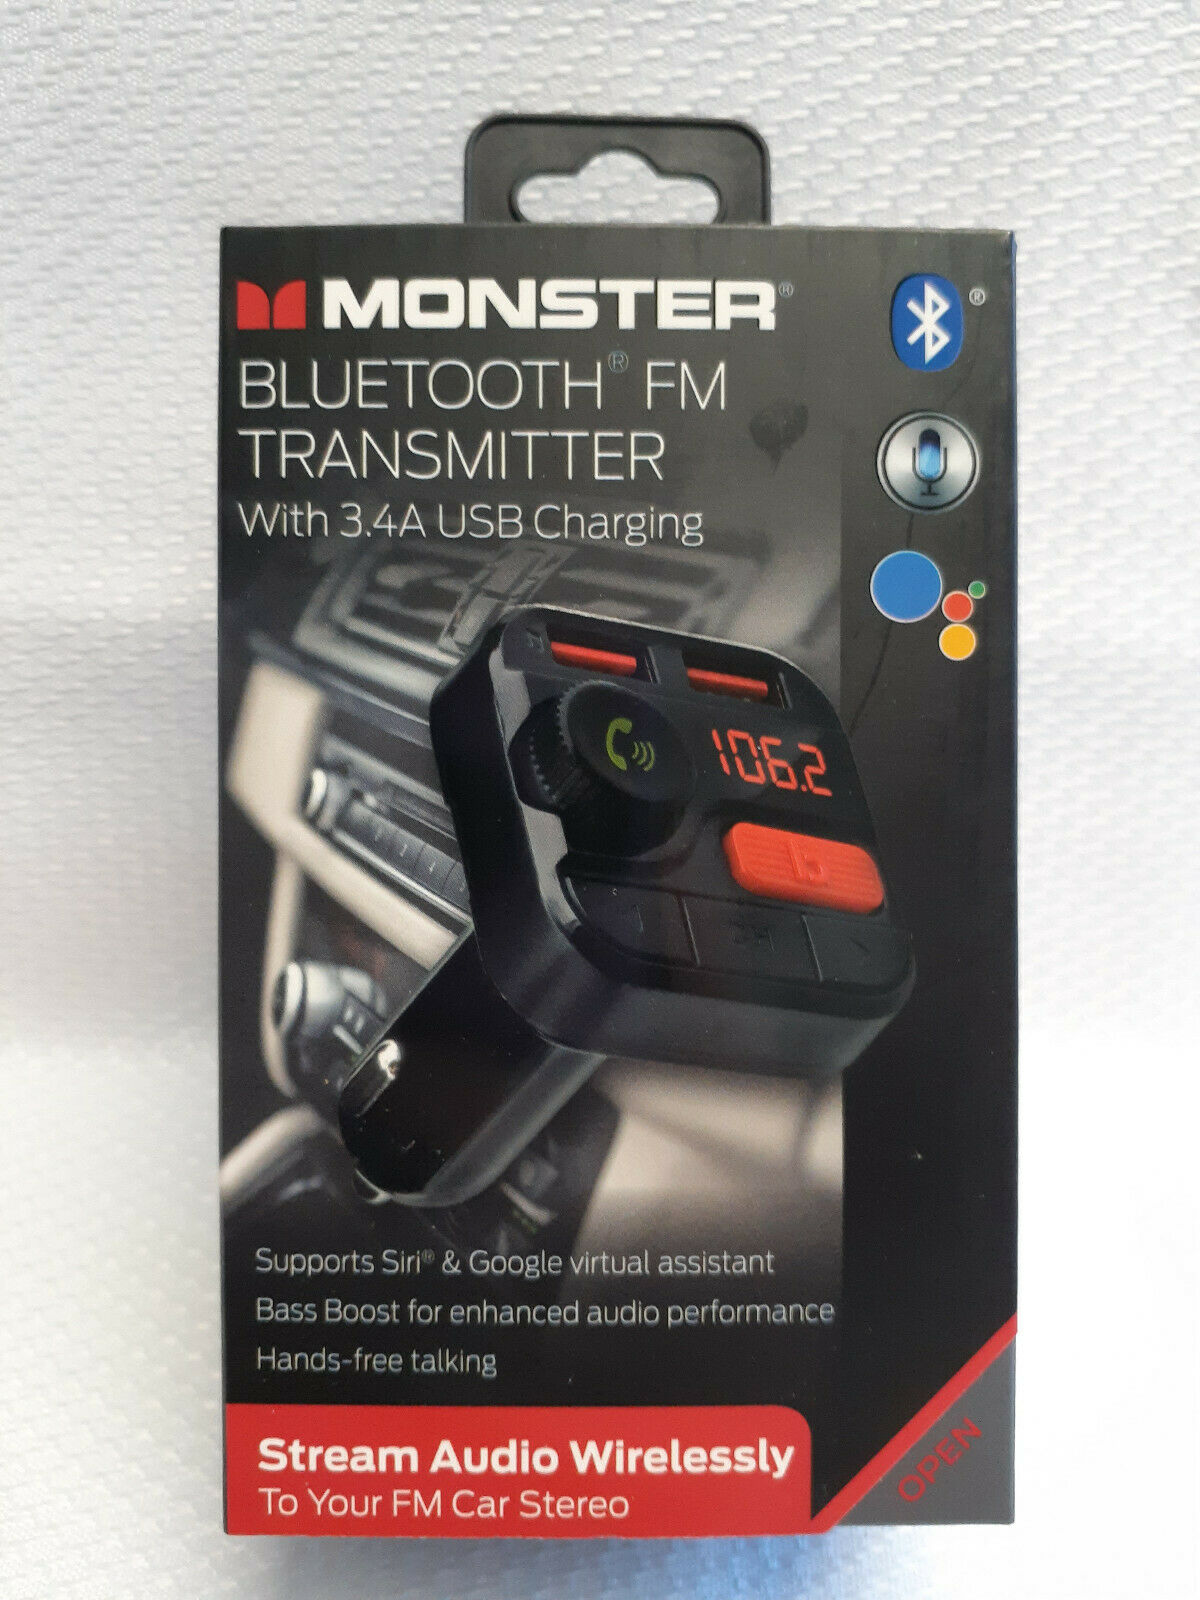 MONSTER BLUETOOTH FM TRANSMITTER WITH 3.4 USB CHARGING #MCC9